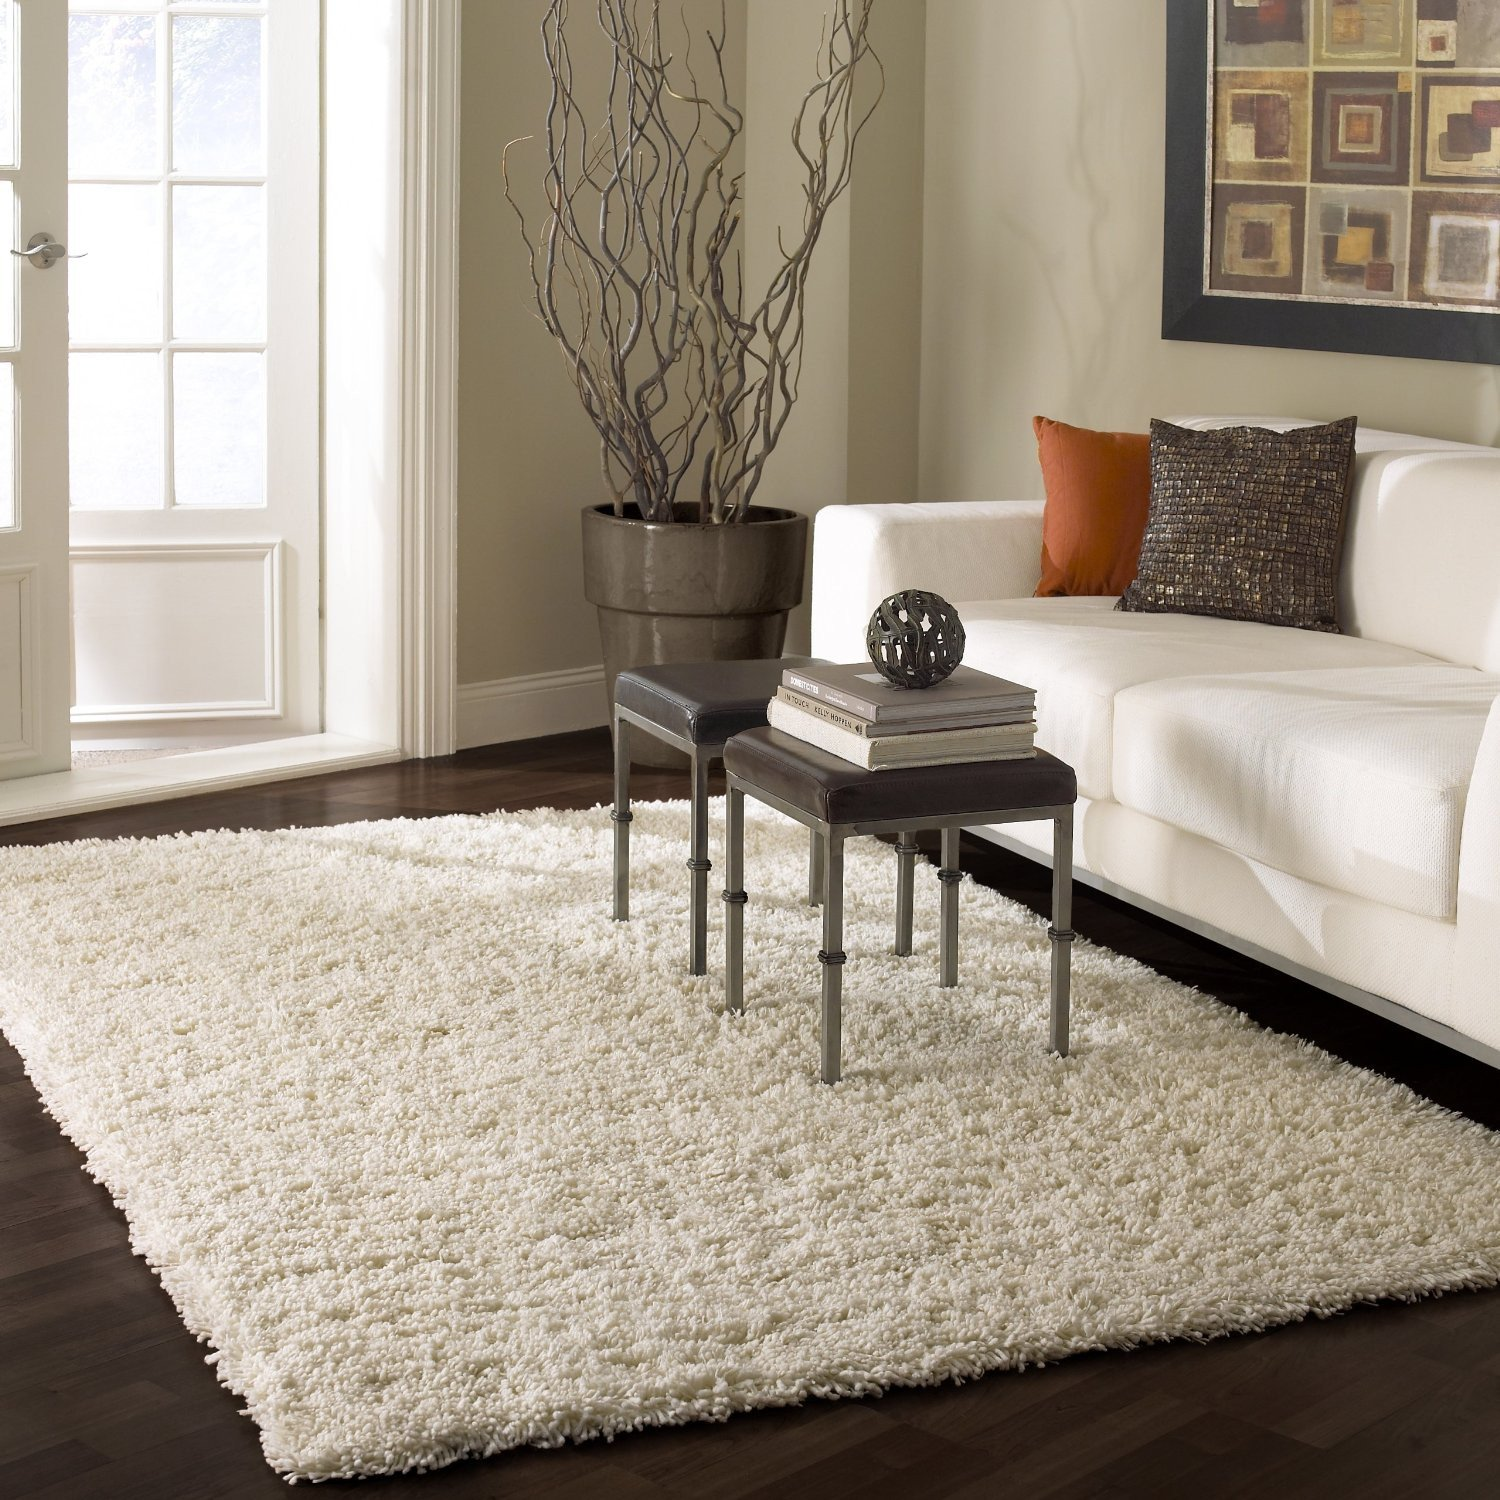 beautiful living room rug minimalist ideas